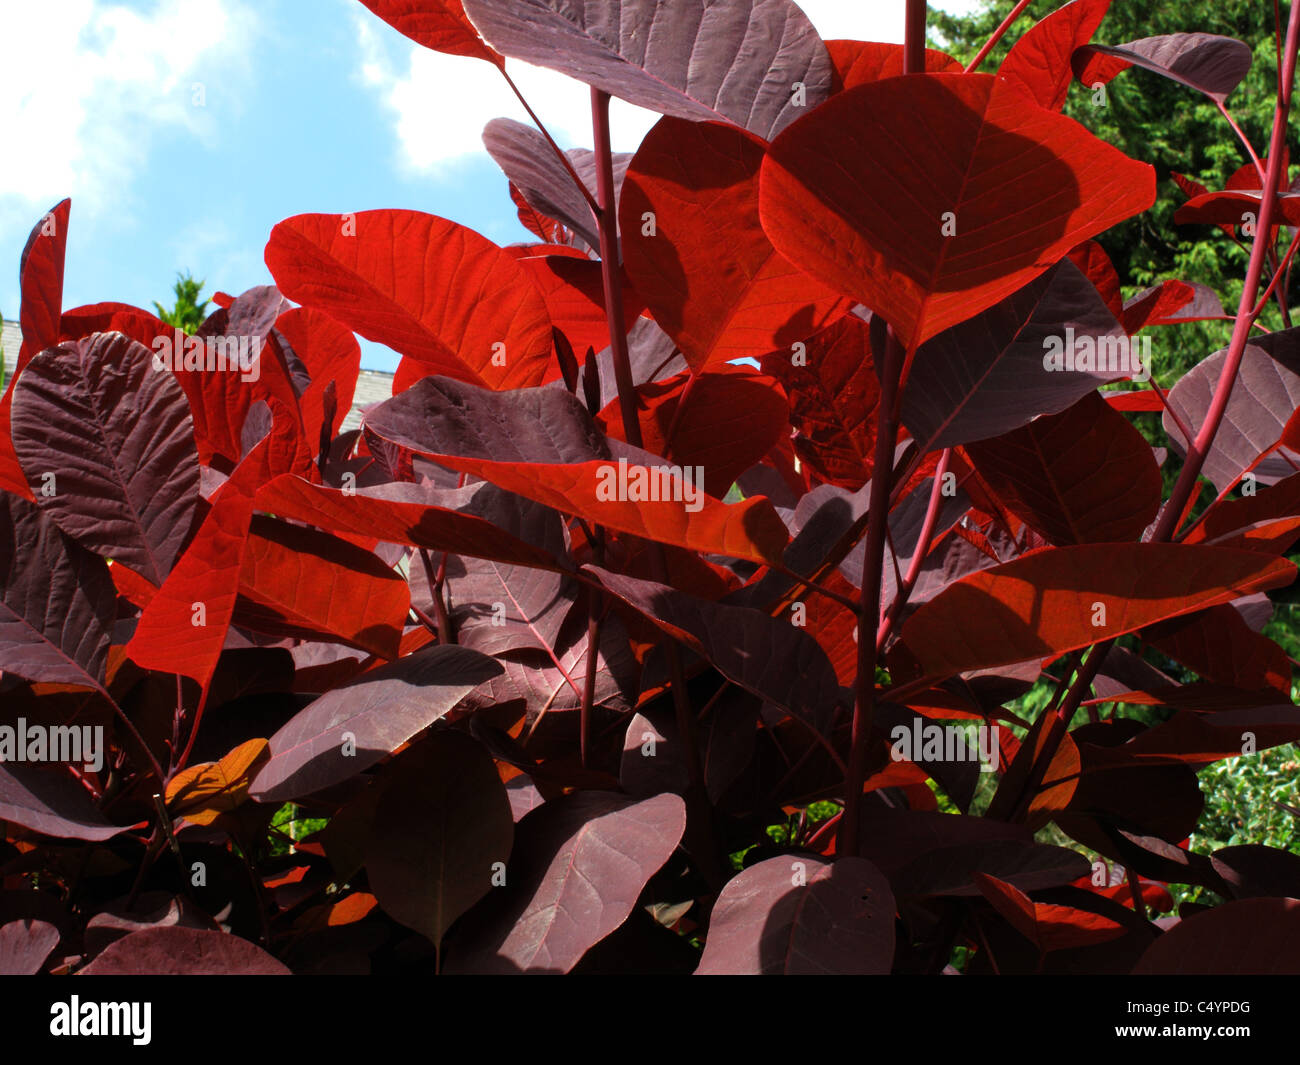 Light shining through the dark red leaves of a smoke tree (Cotinus coggygria) - Stock Image